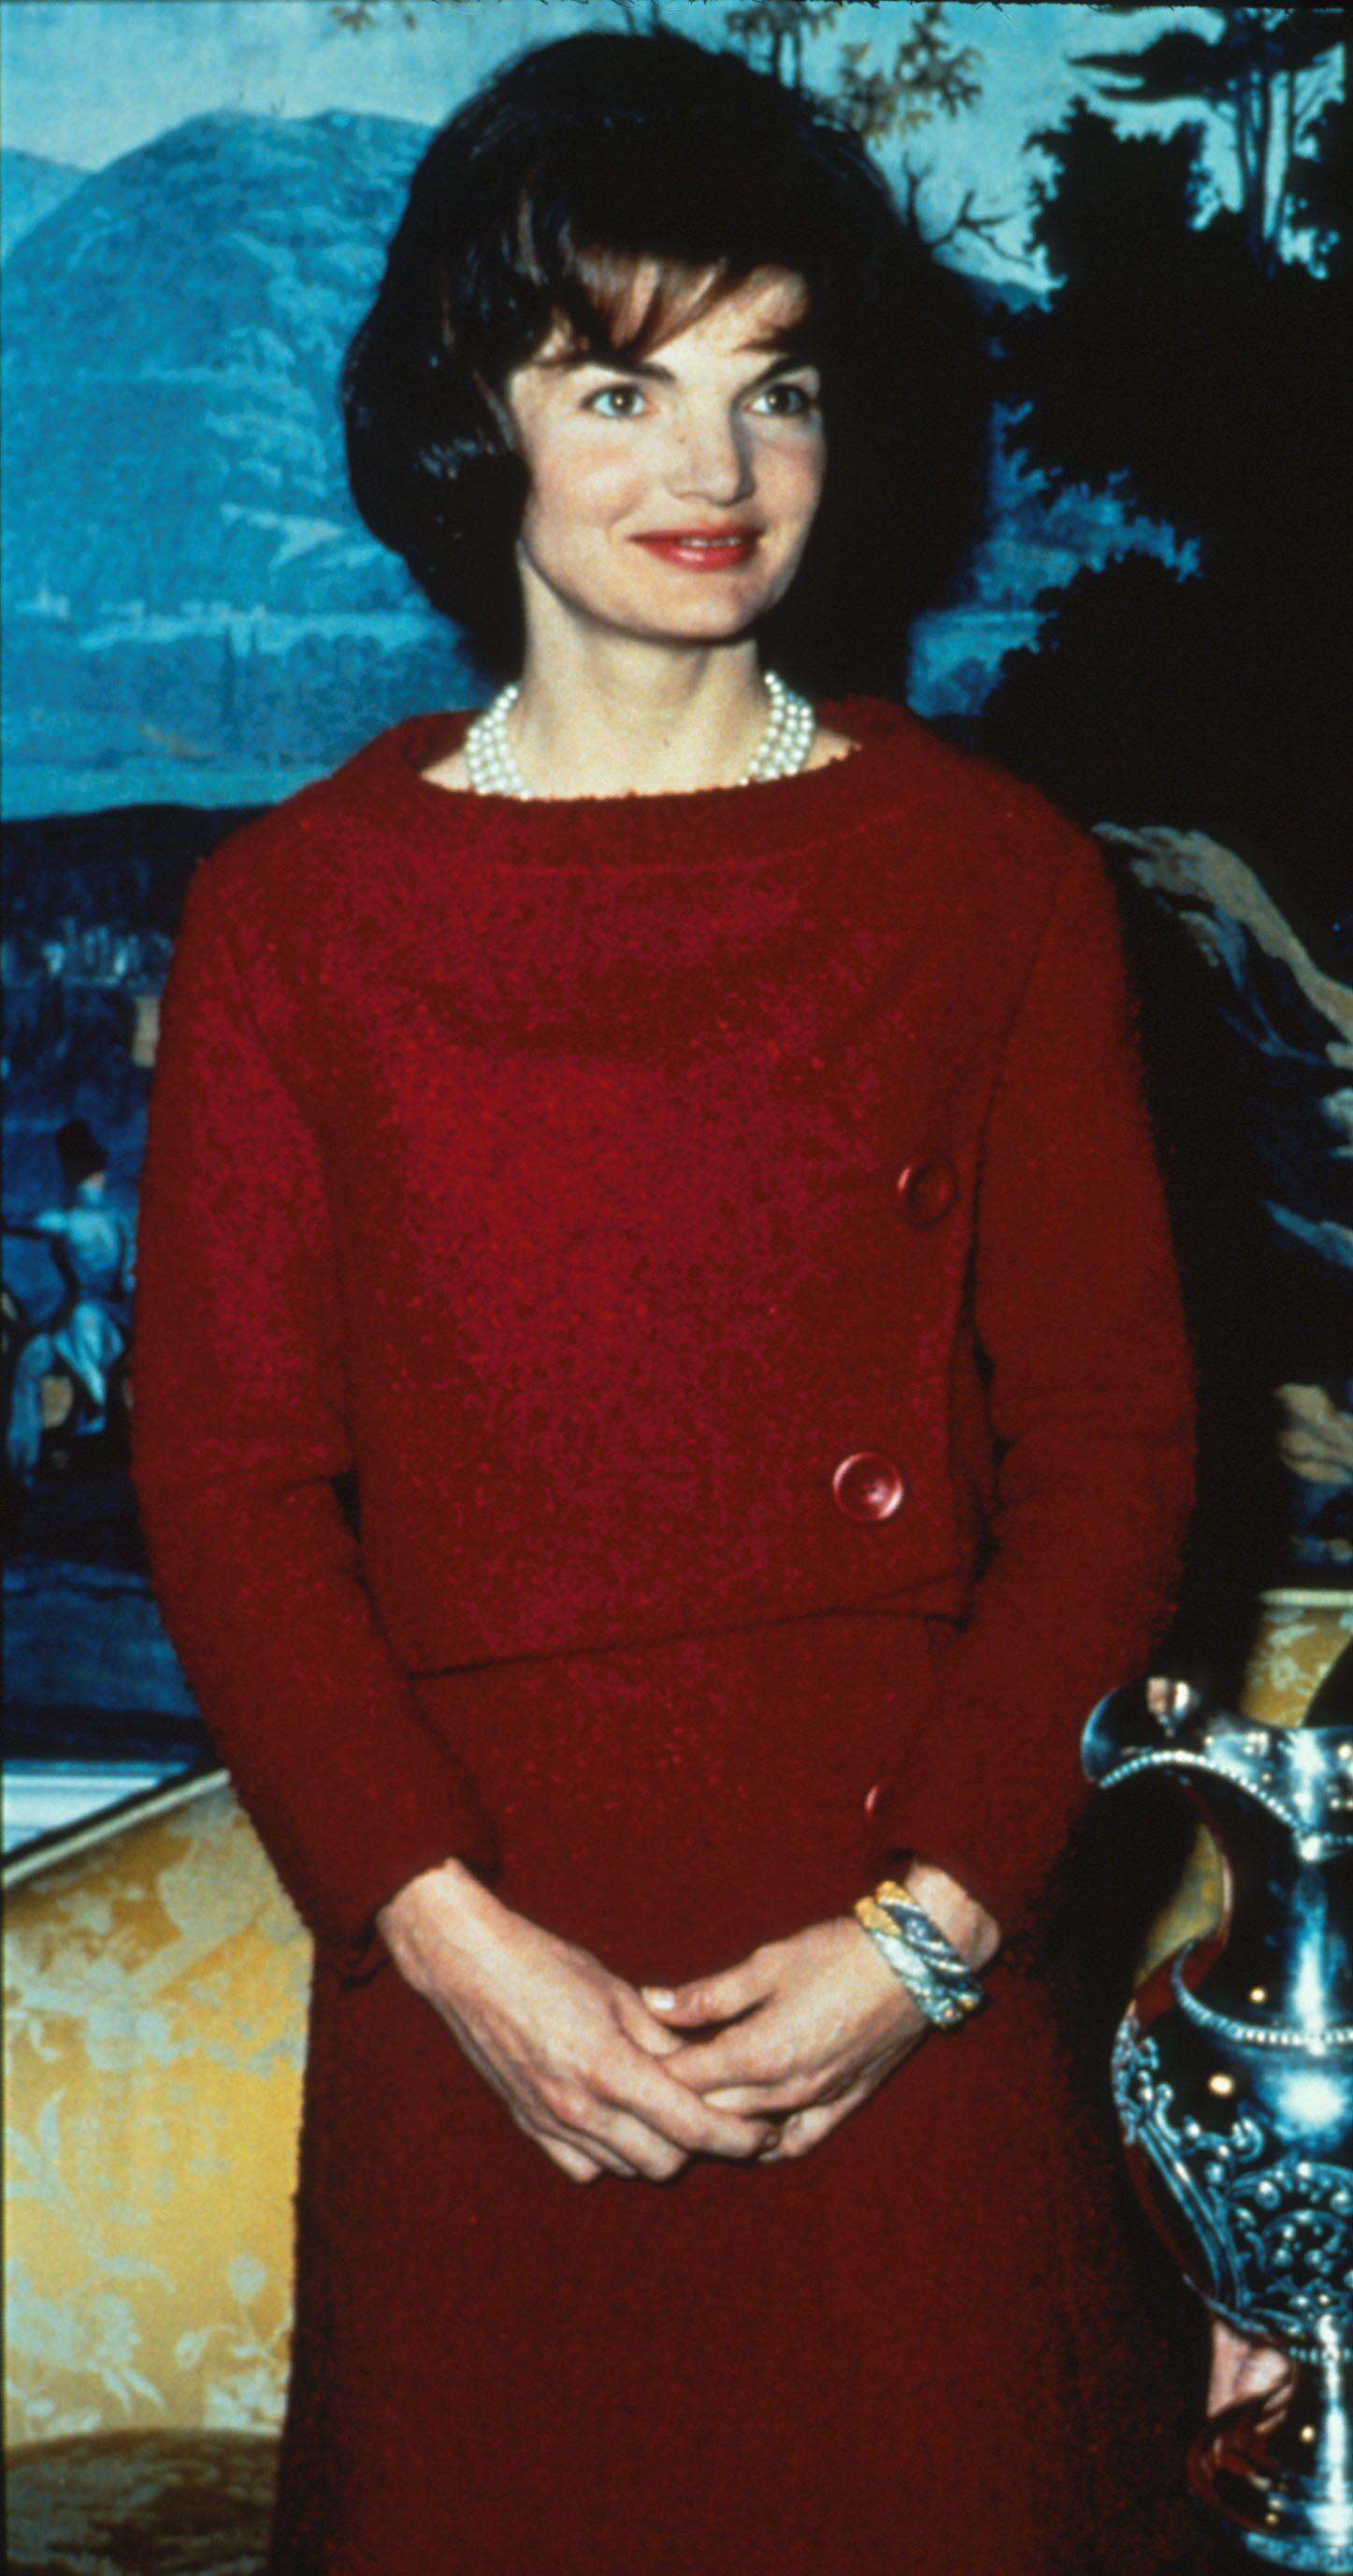 acqueline Kennedy Wears A Chez Ninon Two-Piece Day Dress February 14, 1962 During A Nationally Televised Valentine's Day Tour Of The White House In Washington. | Source: Getty Images